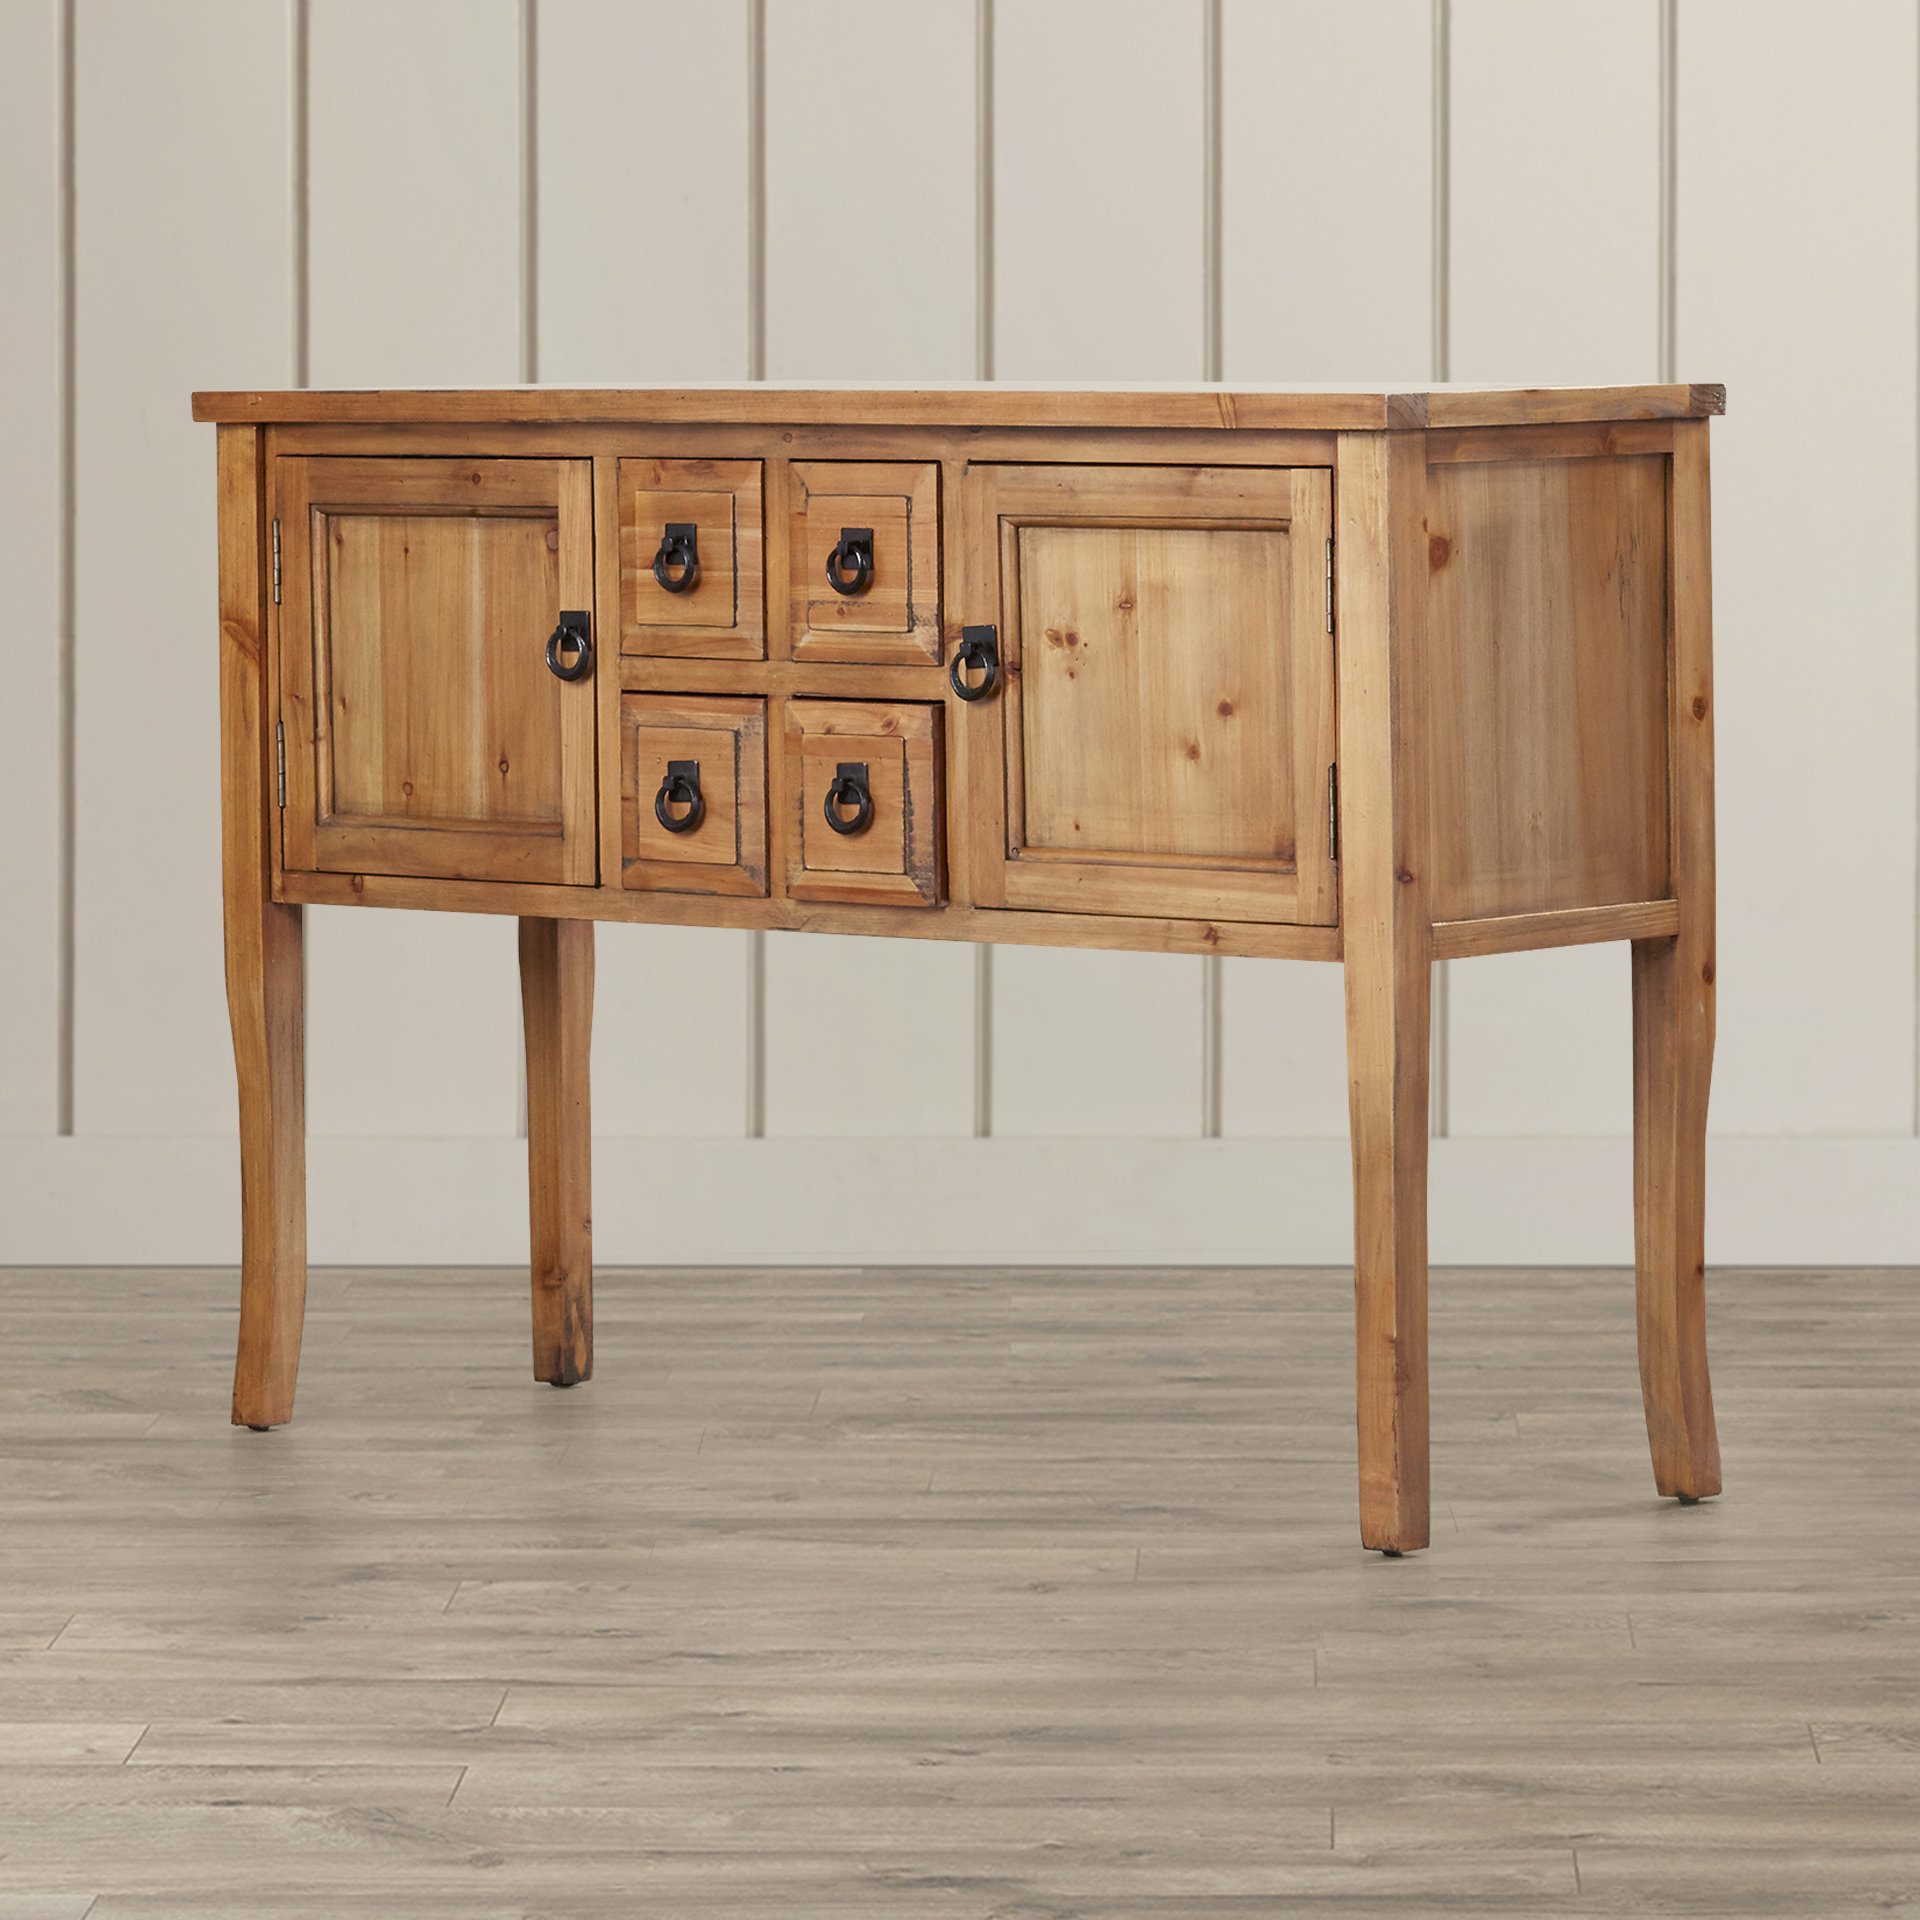 Rustic Sideboards & Buffets | Birch Lane In Most Up To Date Seiling Sideboards (#16 of 20)